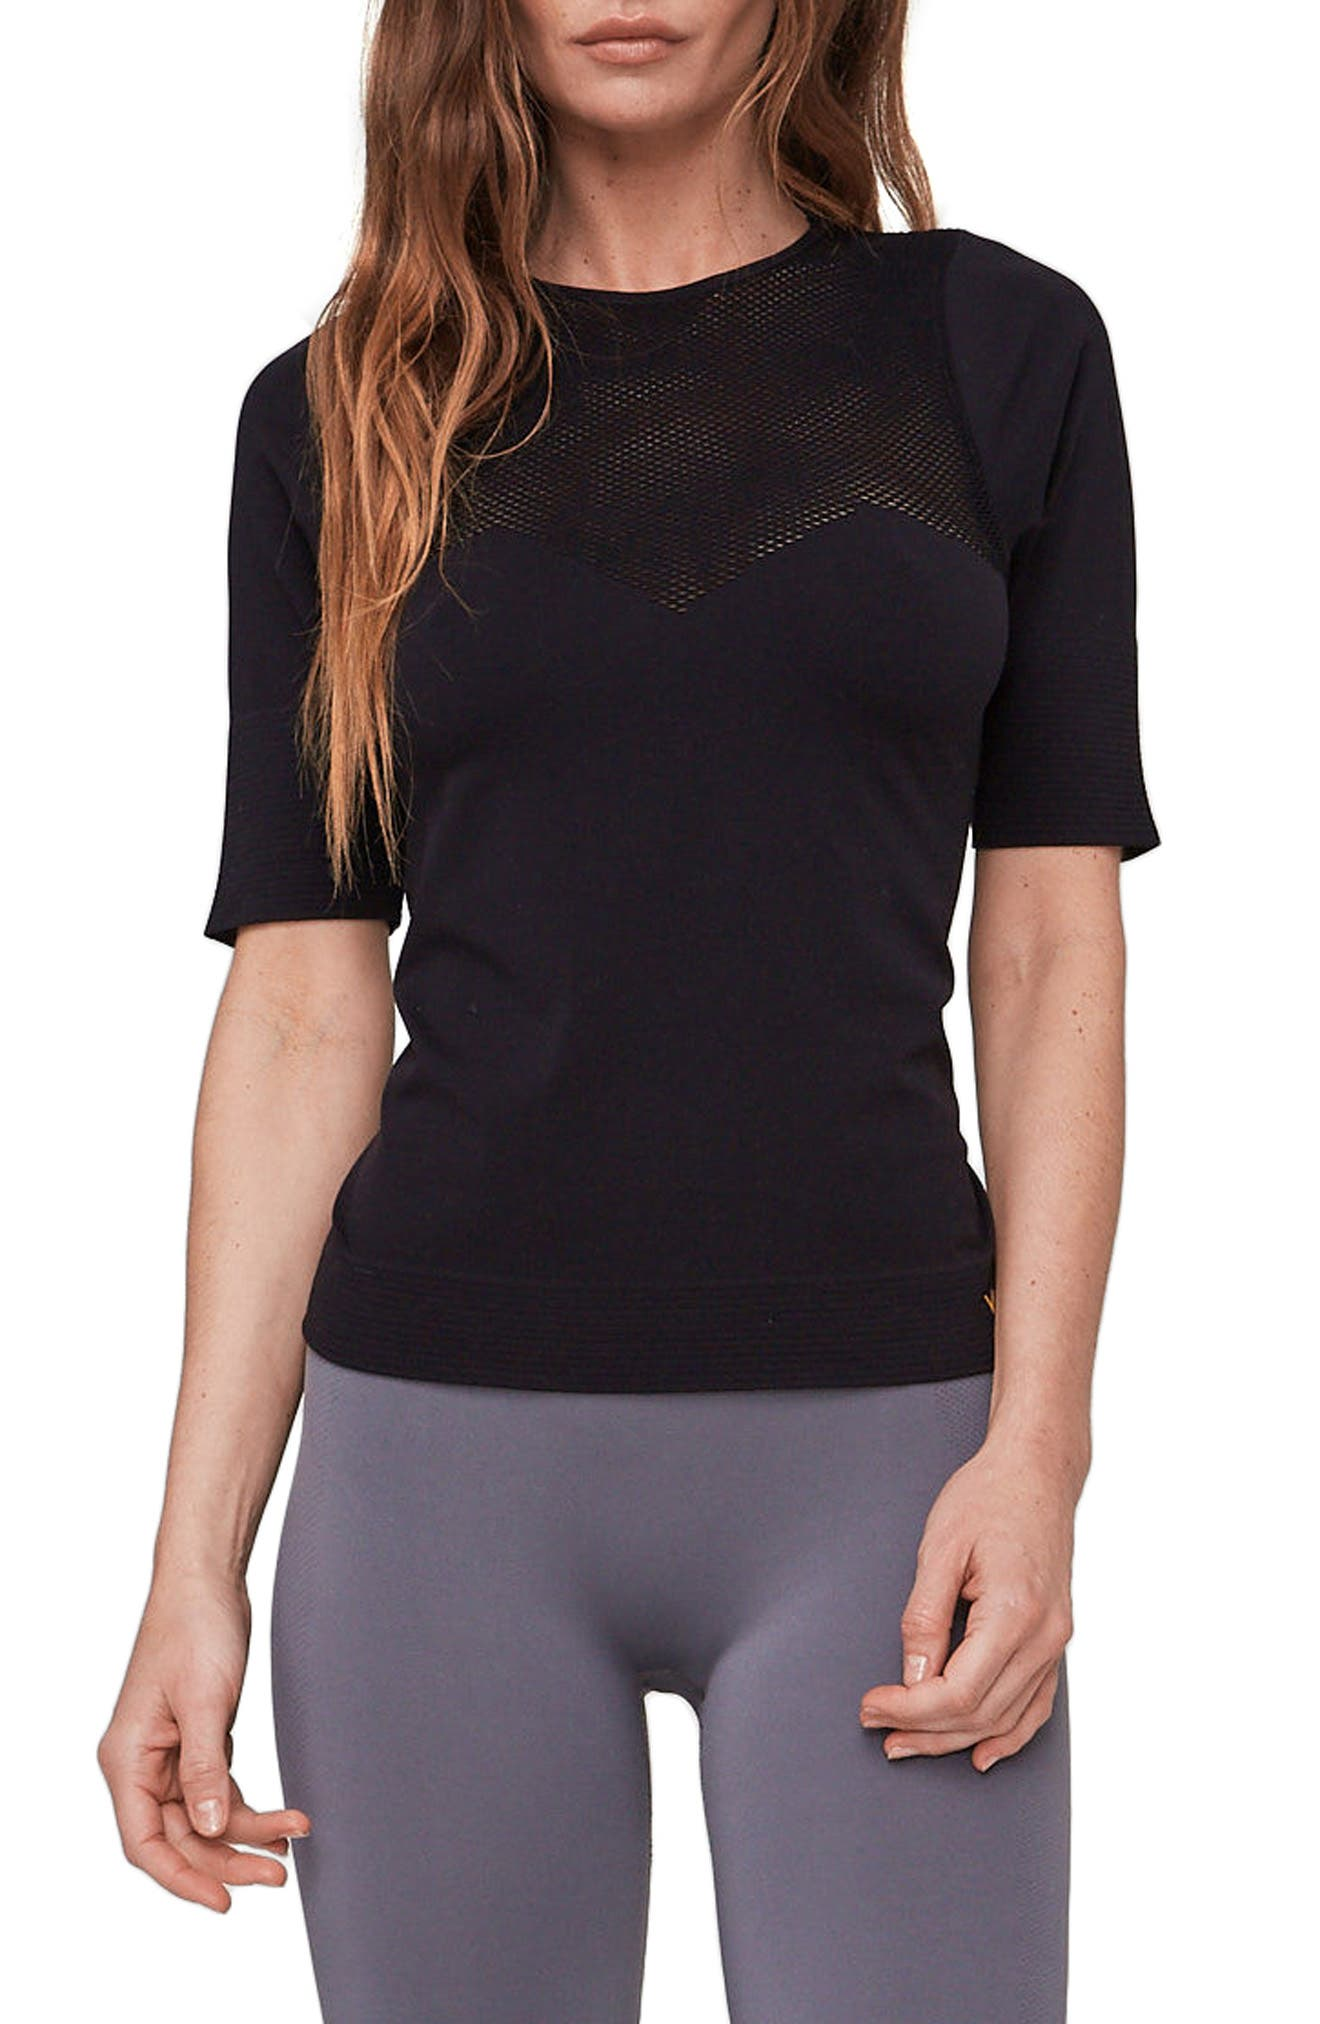 VARLEY Taylor Tee, Main, color, 001